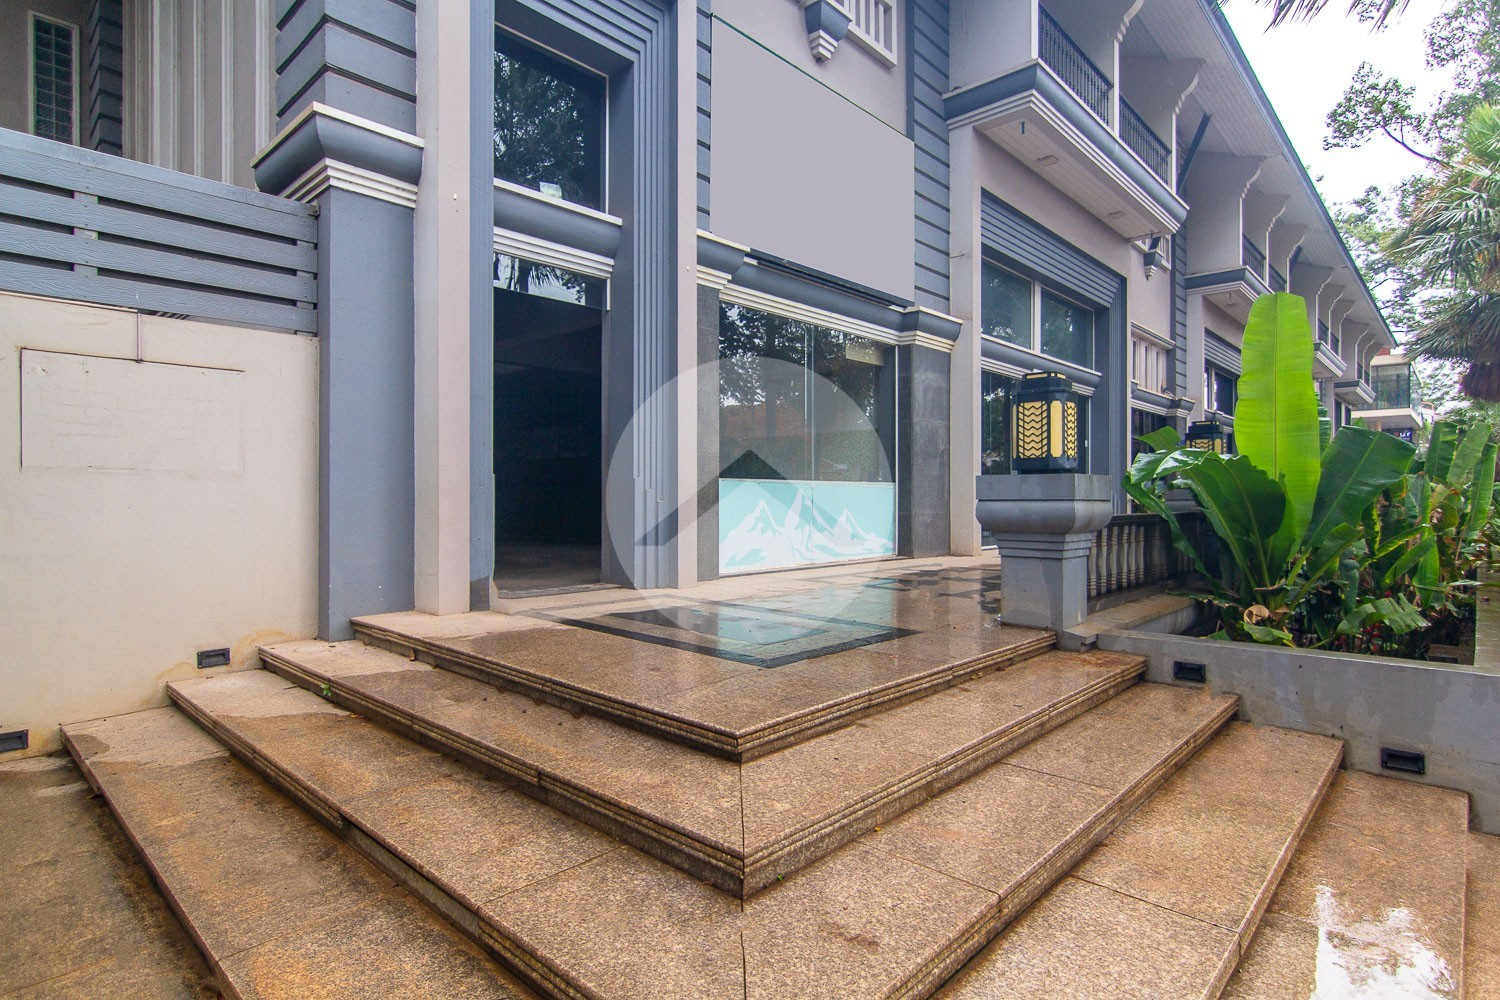 72 Sqm Commercial Space For Rent - Svay Dangkum, Siem Reap